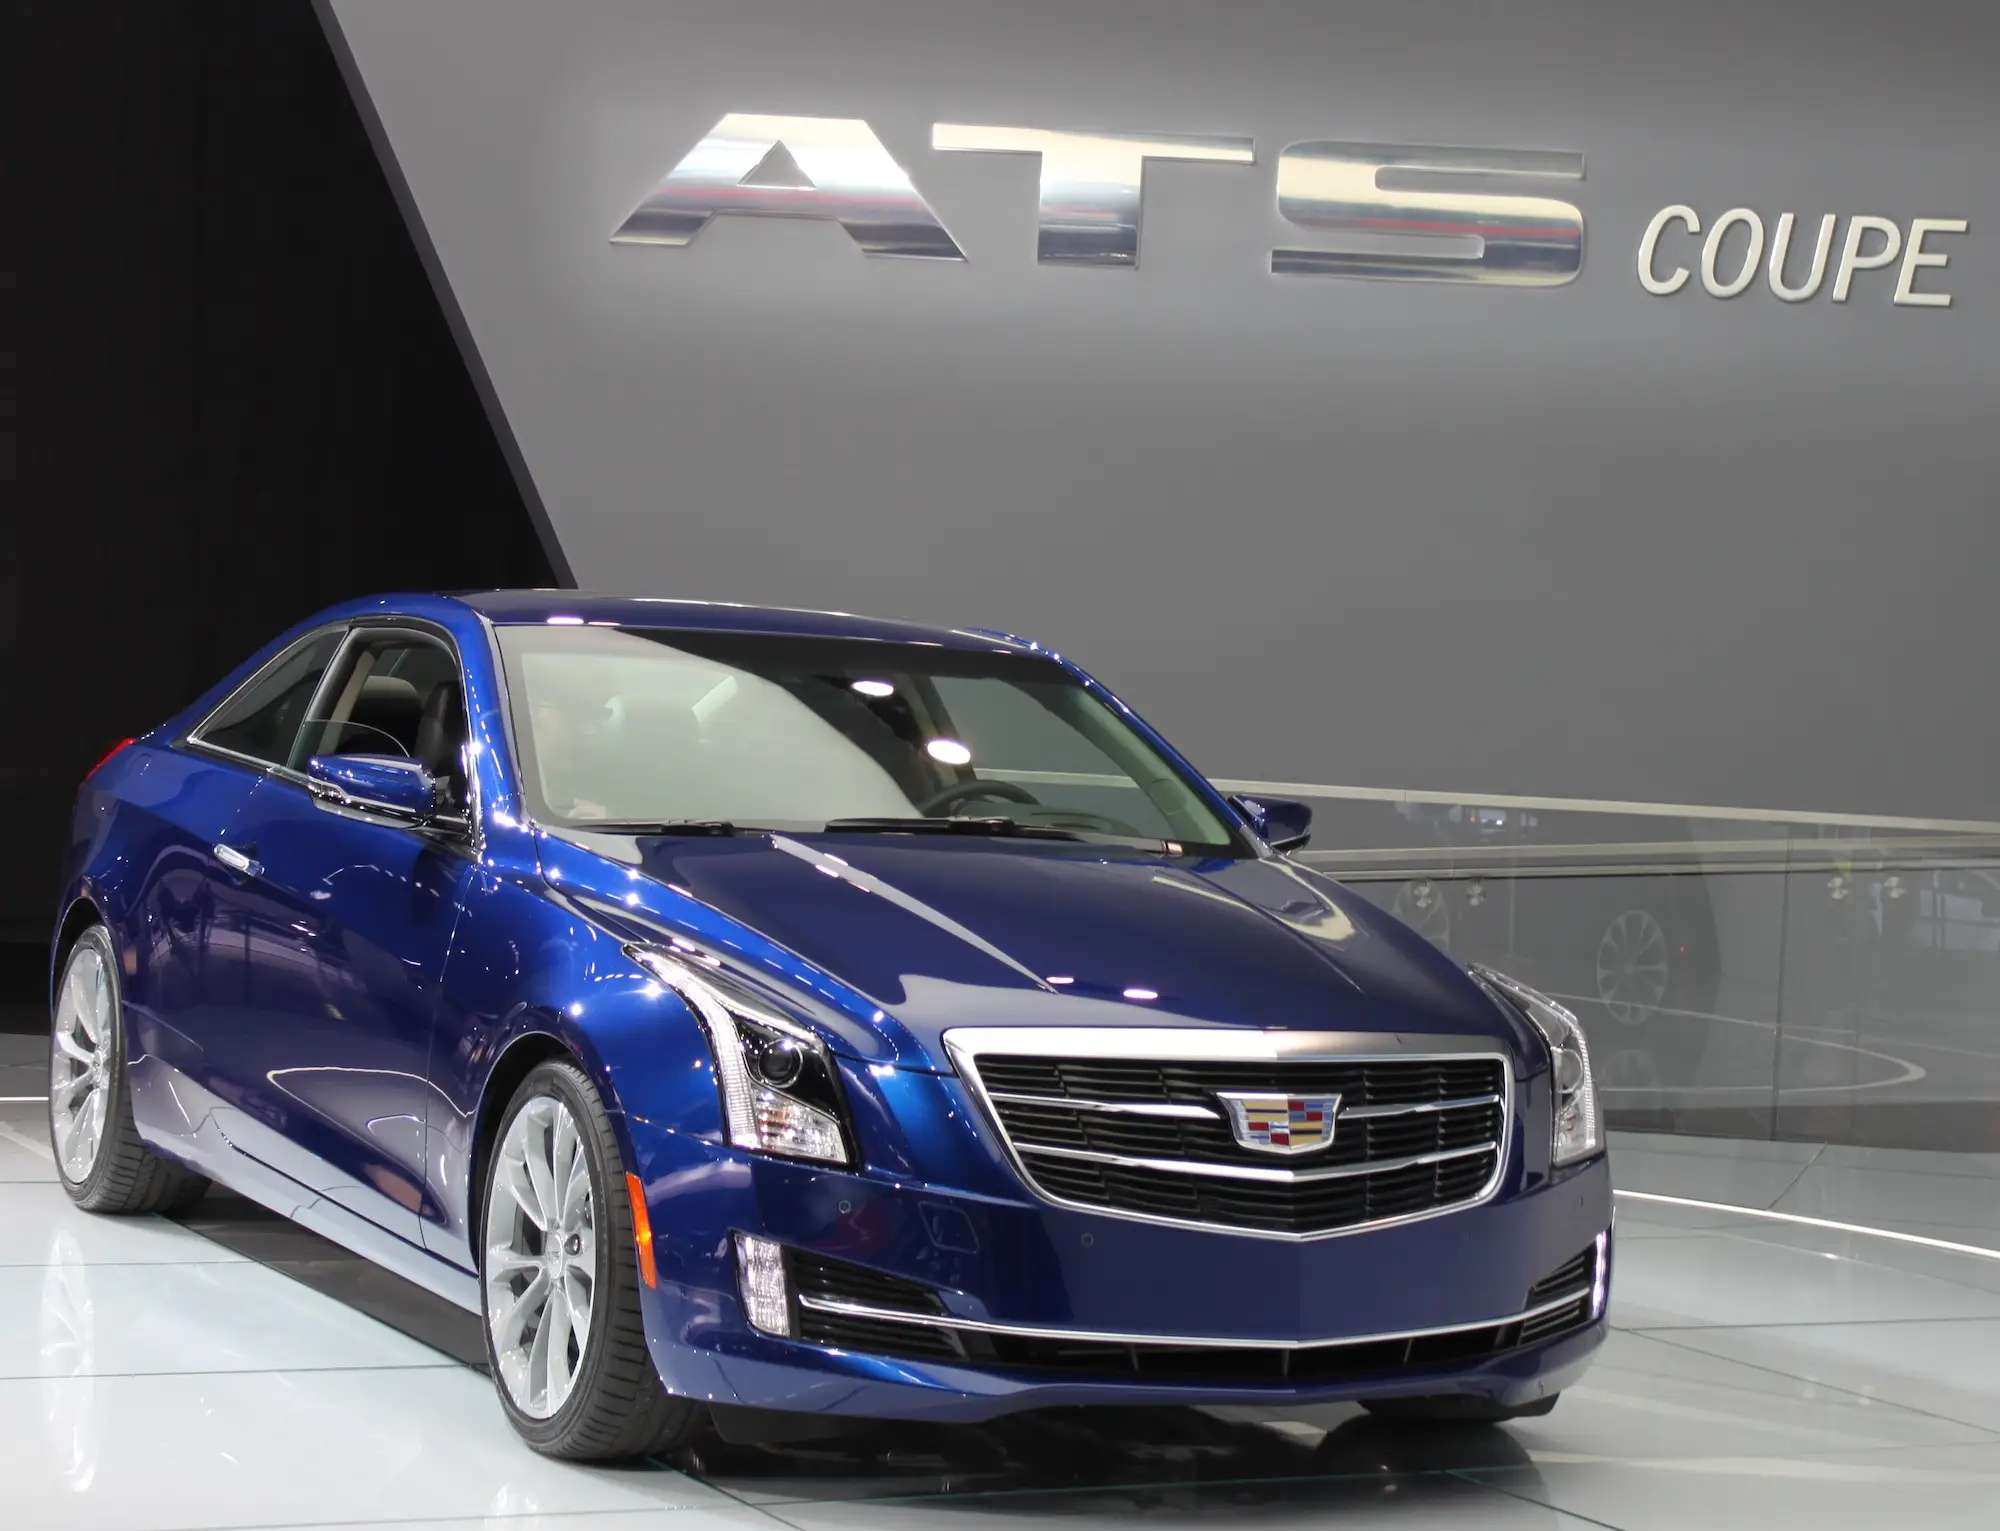 Cadillac showed us the 2015 ATS Coupe, a gorgeous two-door take on the sedan it introduced last year. It's a lightweight powerhouse that will go from 0 to 60 mph in about 5.6 seconds, the luxury brand says.